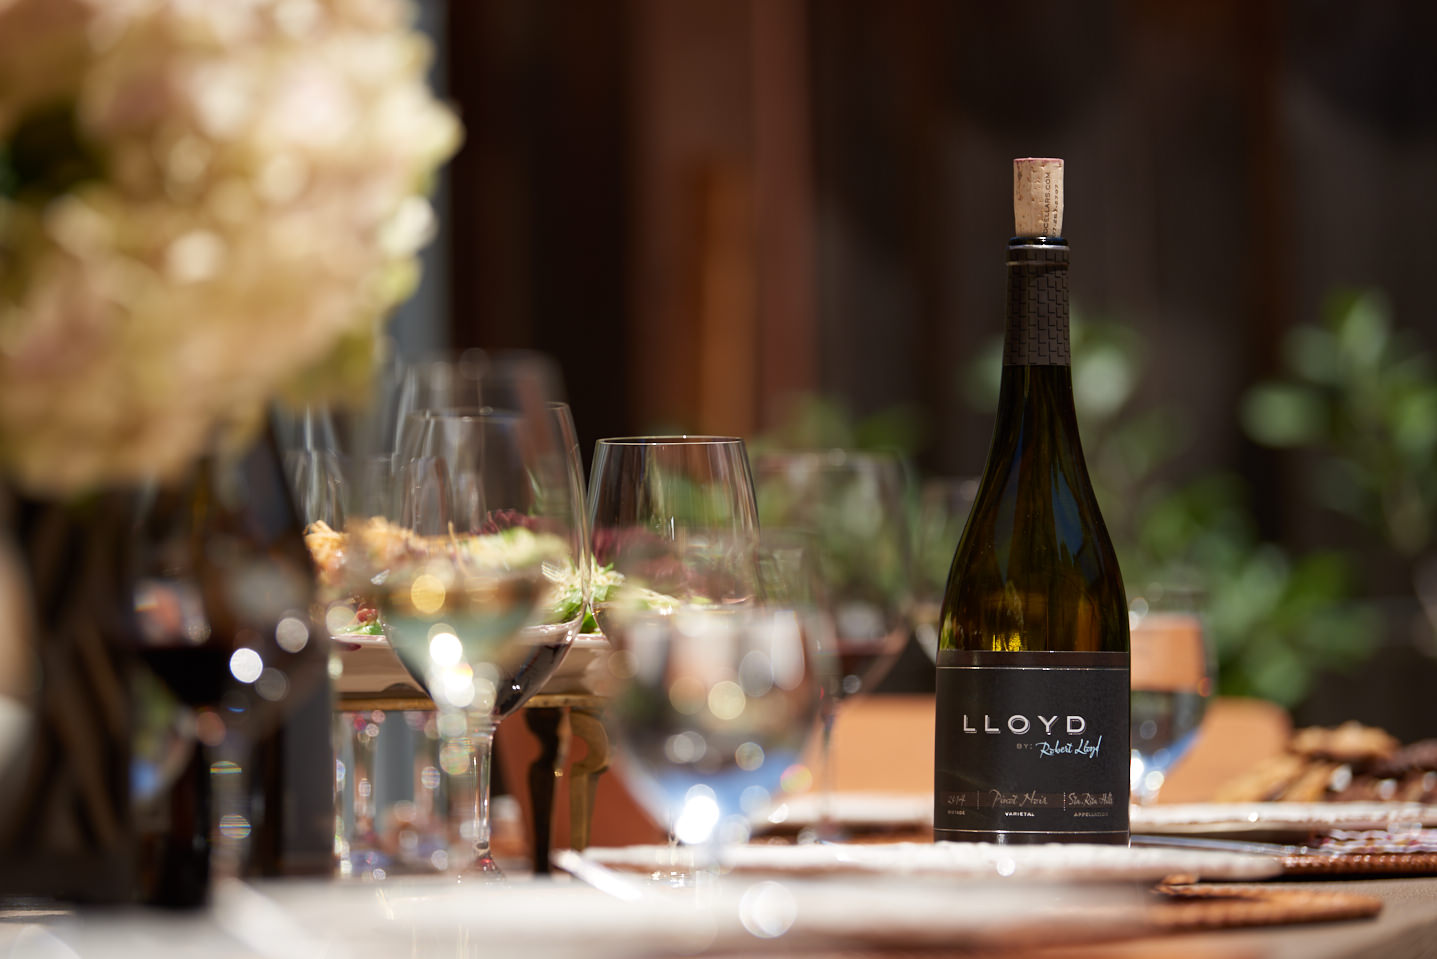 Shop Lloyd Cellars